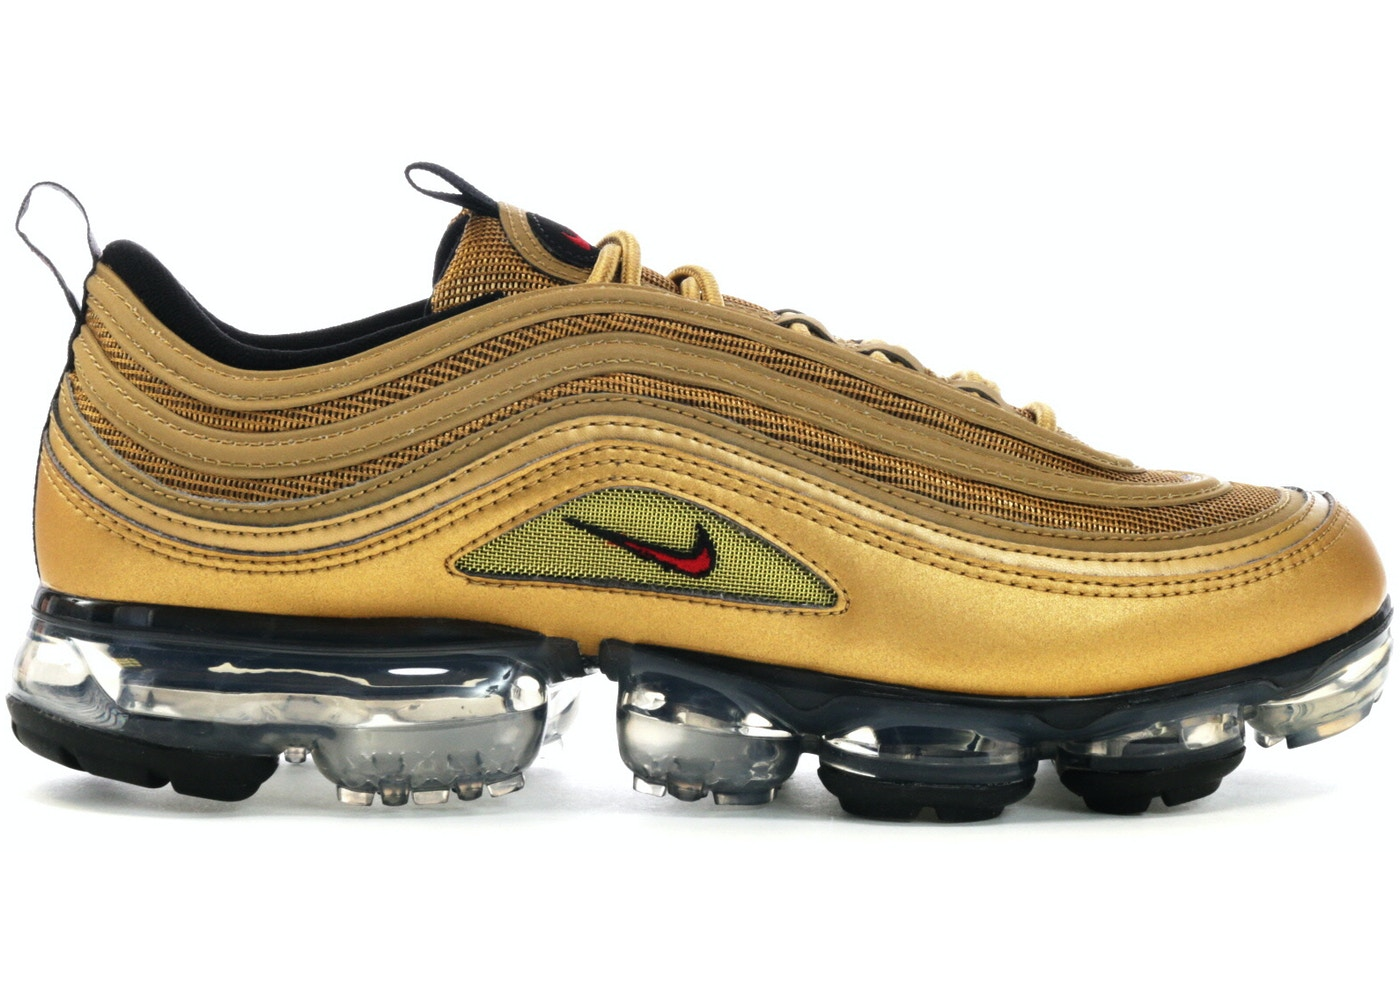 premium selection 8b838 83515 Air VaporMax 97 Metallic Gold - AJ7291-700